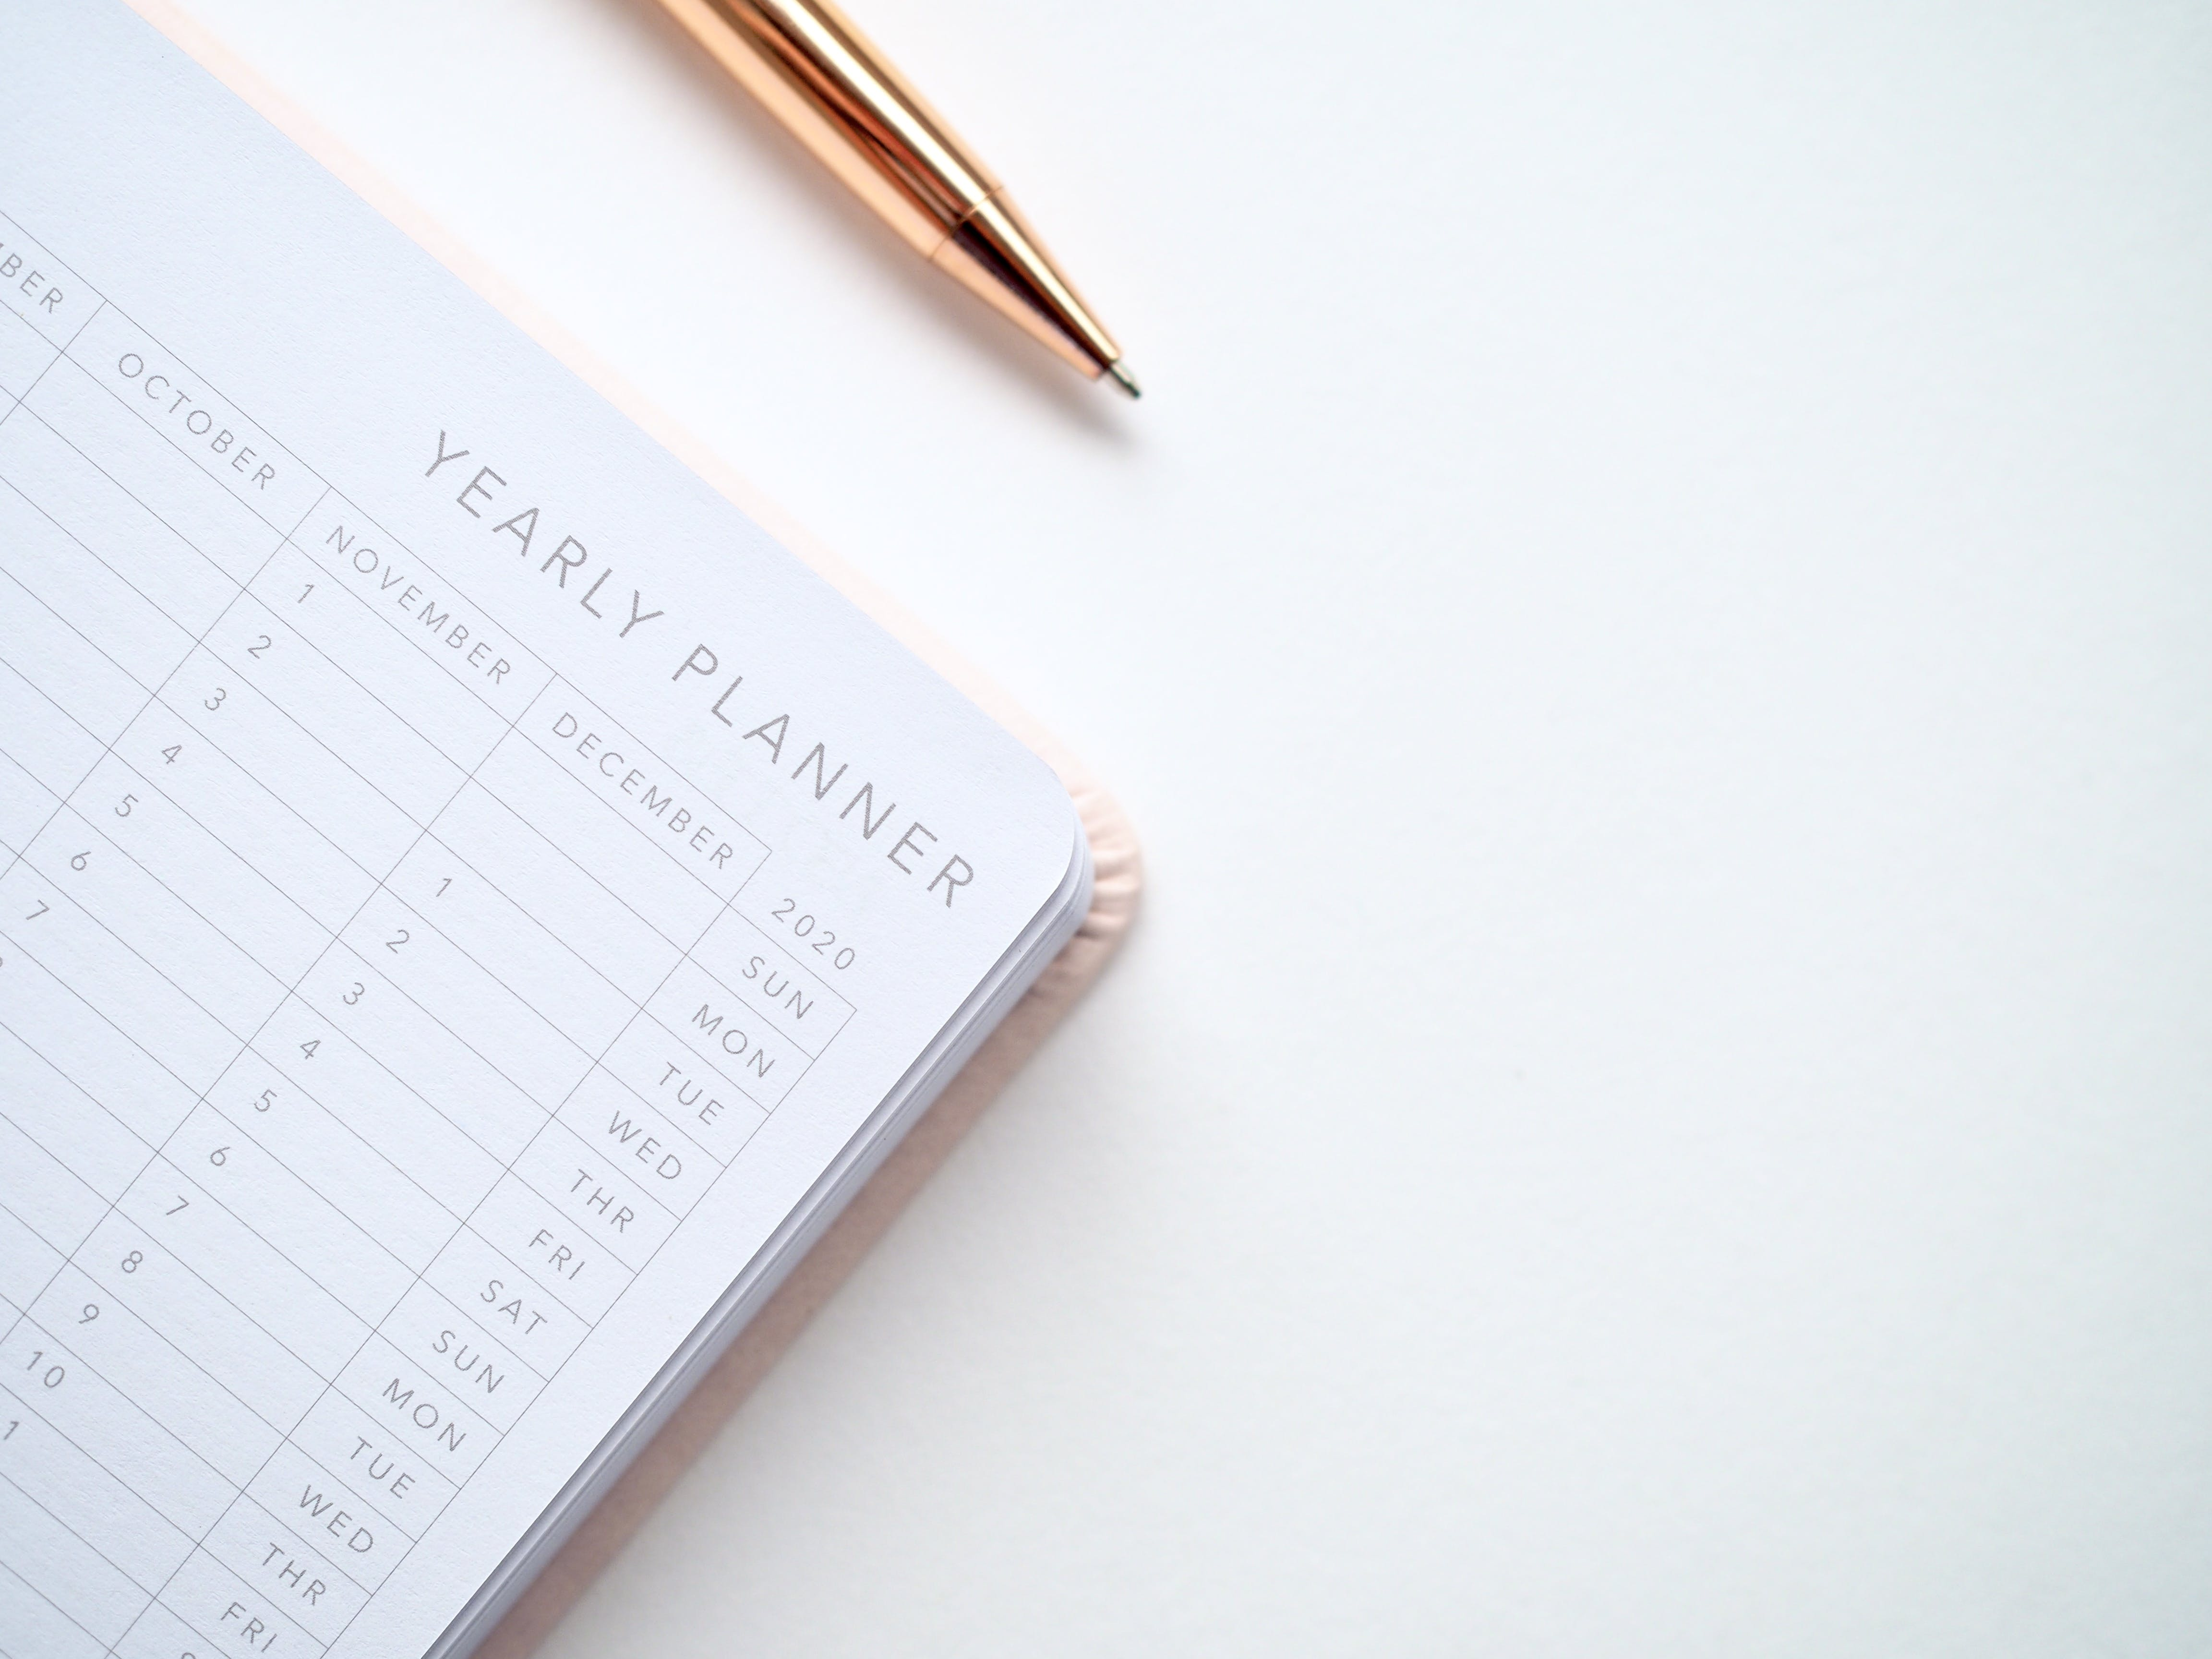 Close-Up Photo of Yearly Planner Beside a Pen